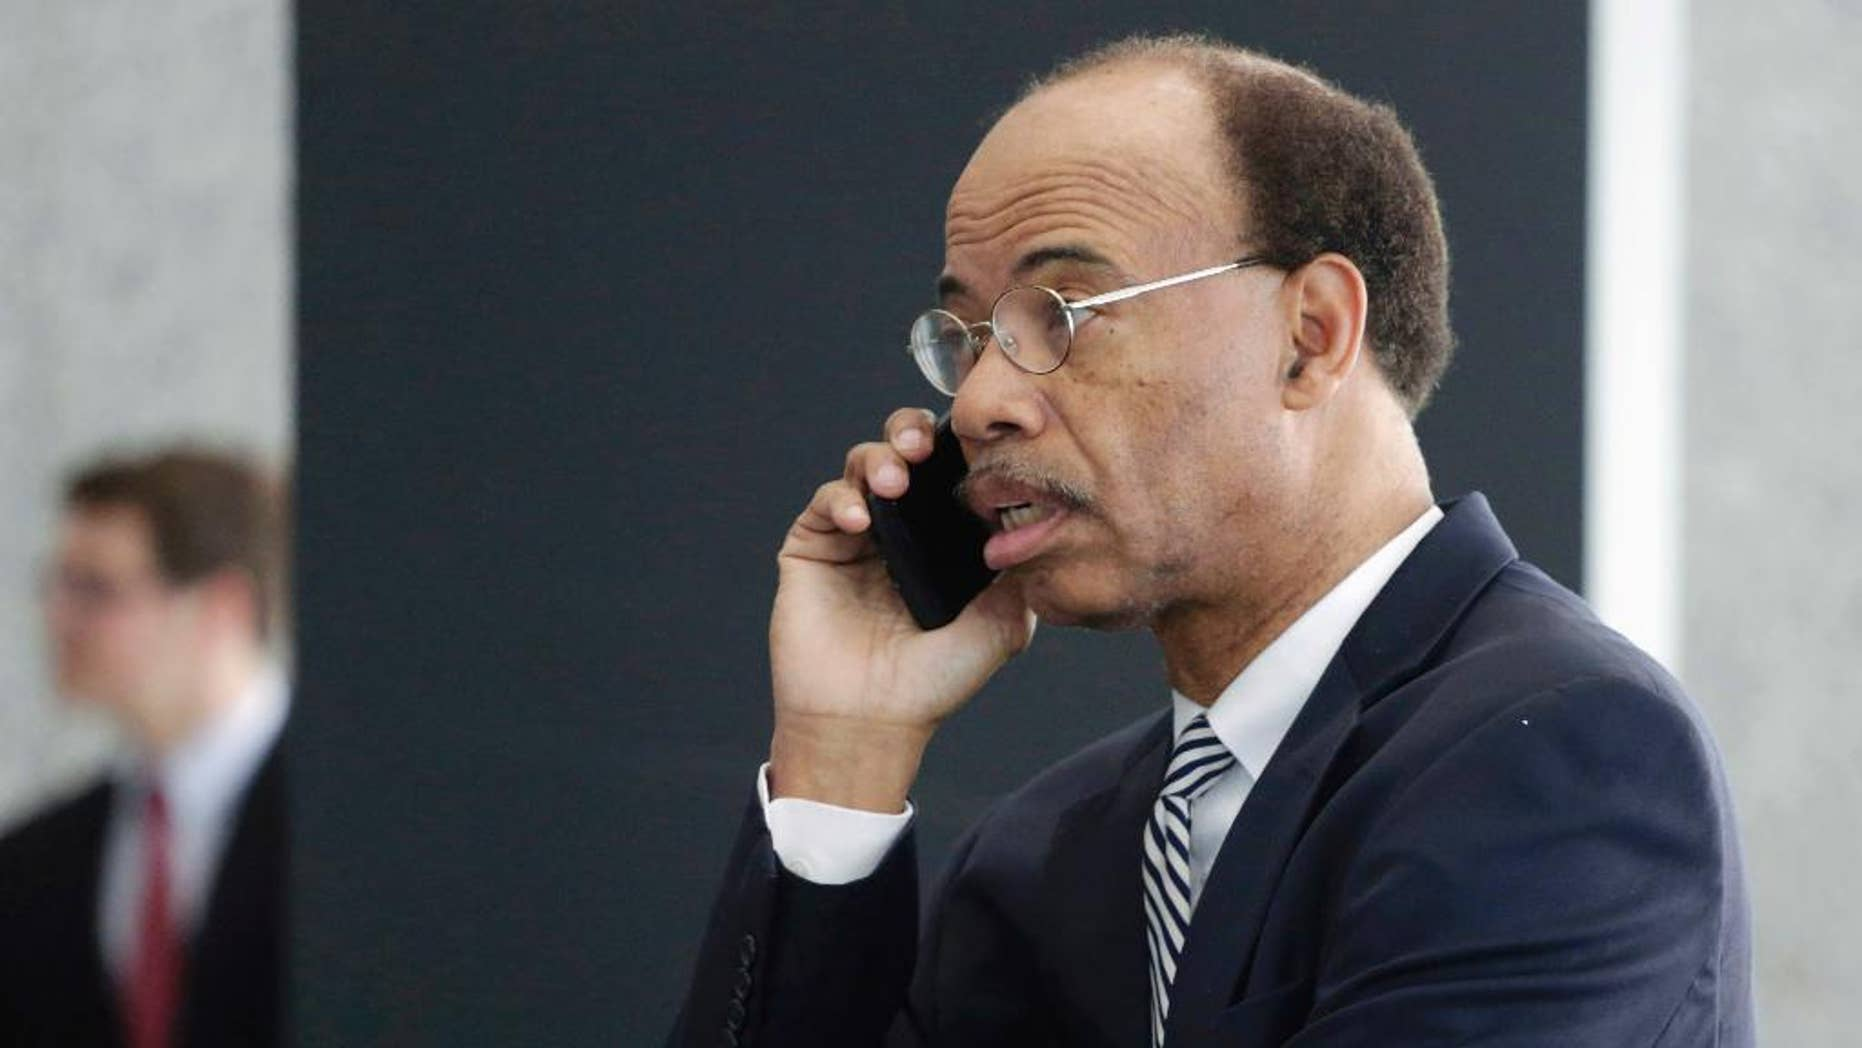 FILE - In this July 30, 2015, file photo, former Illinois U.S. Rep. Mel Reynolds talks on his cell phone as he leaves federal court in Chicago. Reynolds says he no longer wants to plead guilty to misdemeanor federal tax charges. In a hand-written court filing Tuesday, May 17, 2016, Reynolds said he wants to be released to a Chicago halfway house where he believes he can better prepare for his June 20 trial. (AP Photo/M. Spencer Green, File)